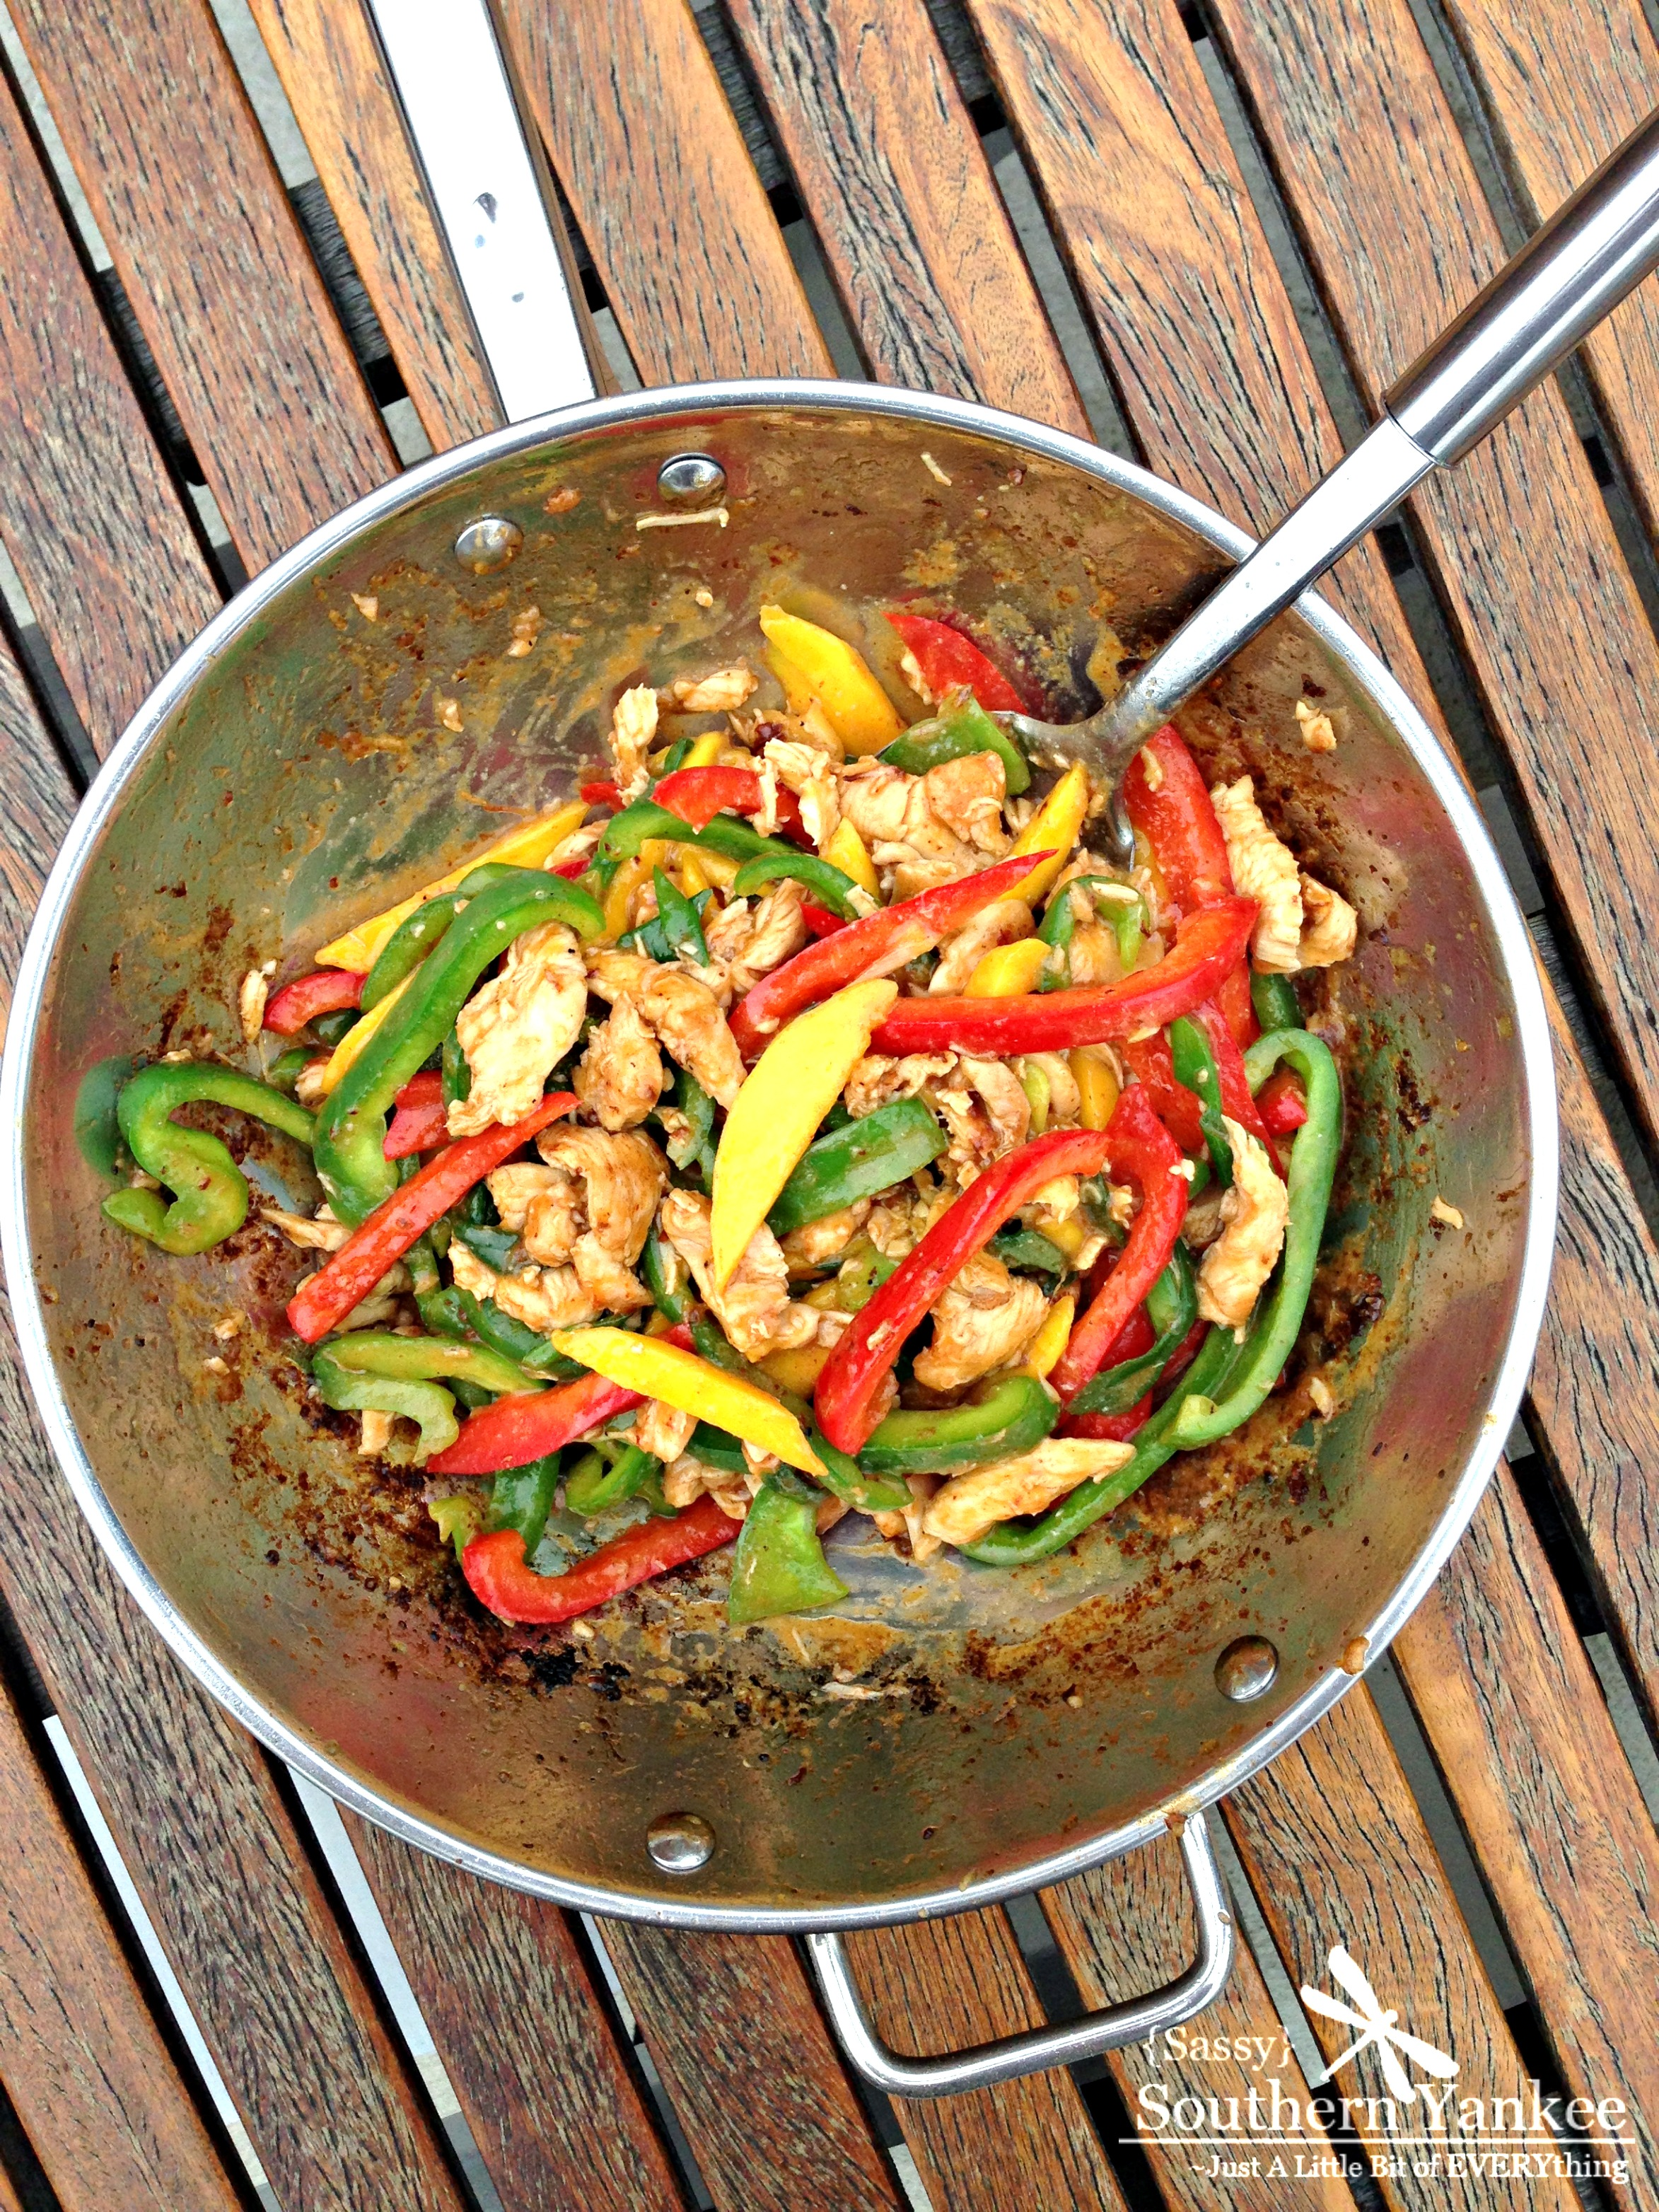 Easy Stir-Fried Chili Mango Chicken With Peppers (Gluten Free) - Sassy ...